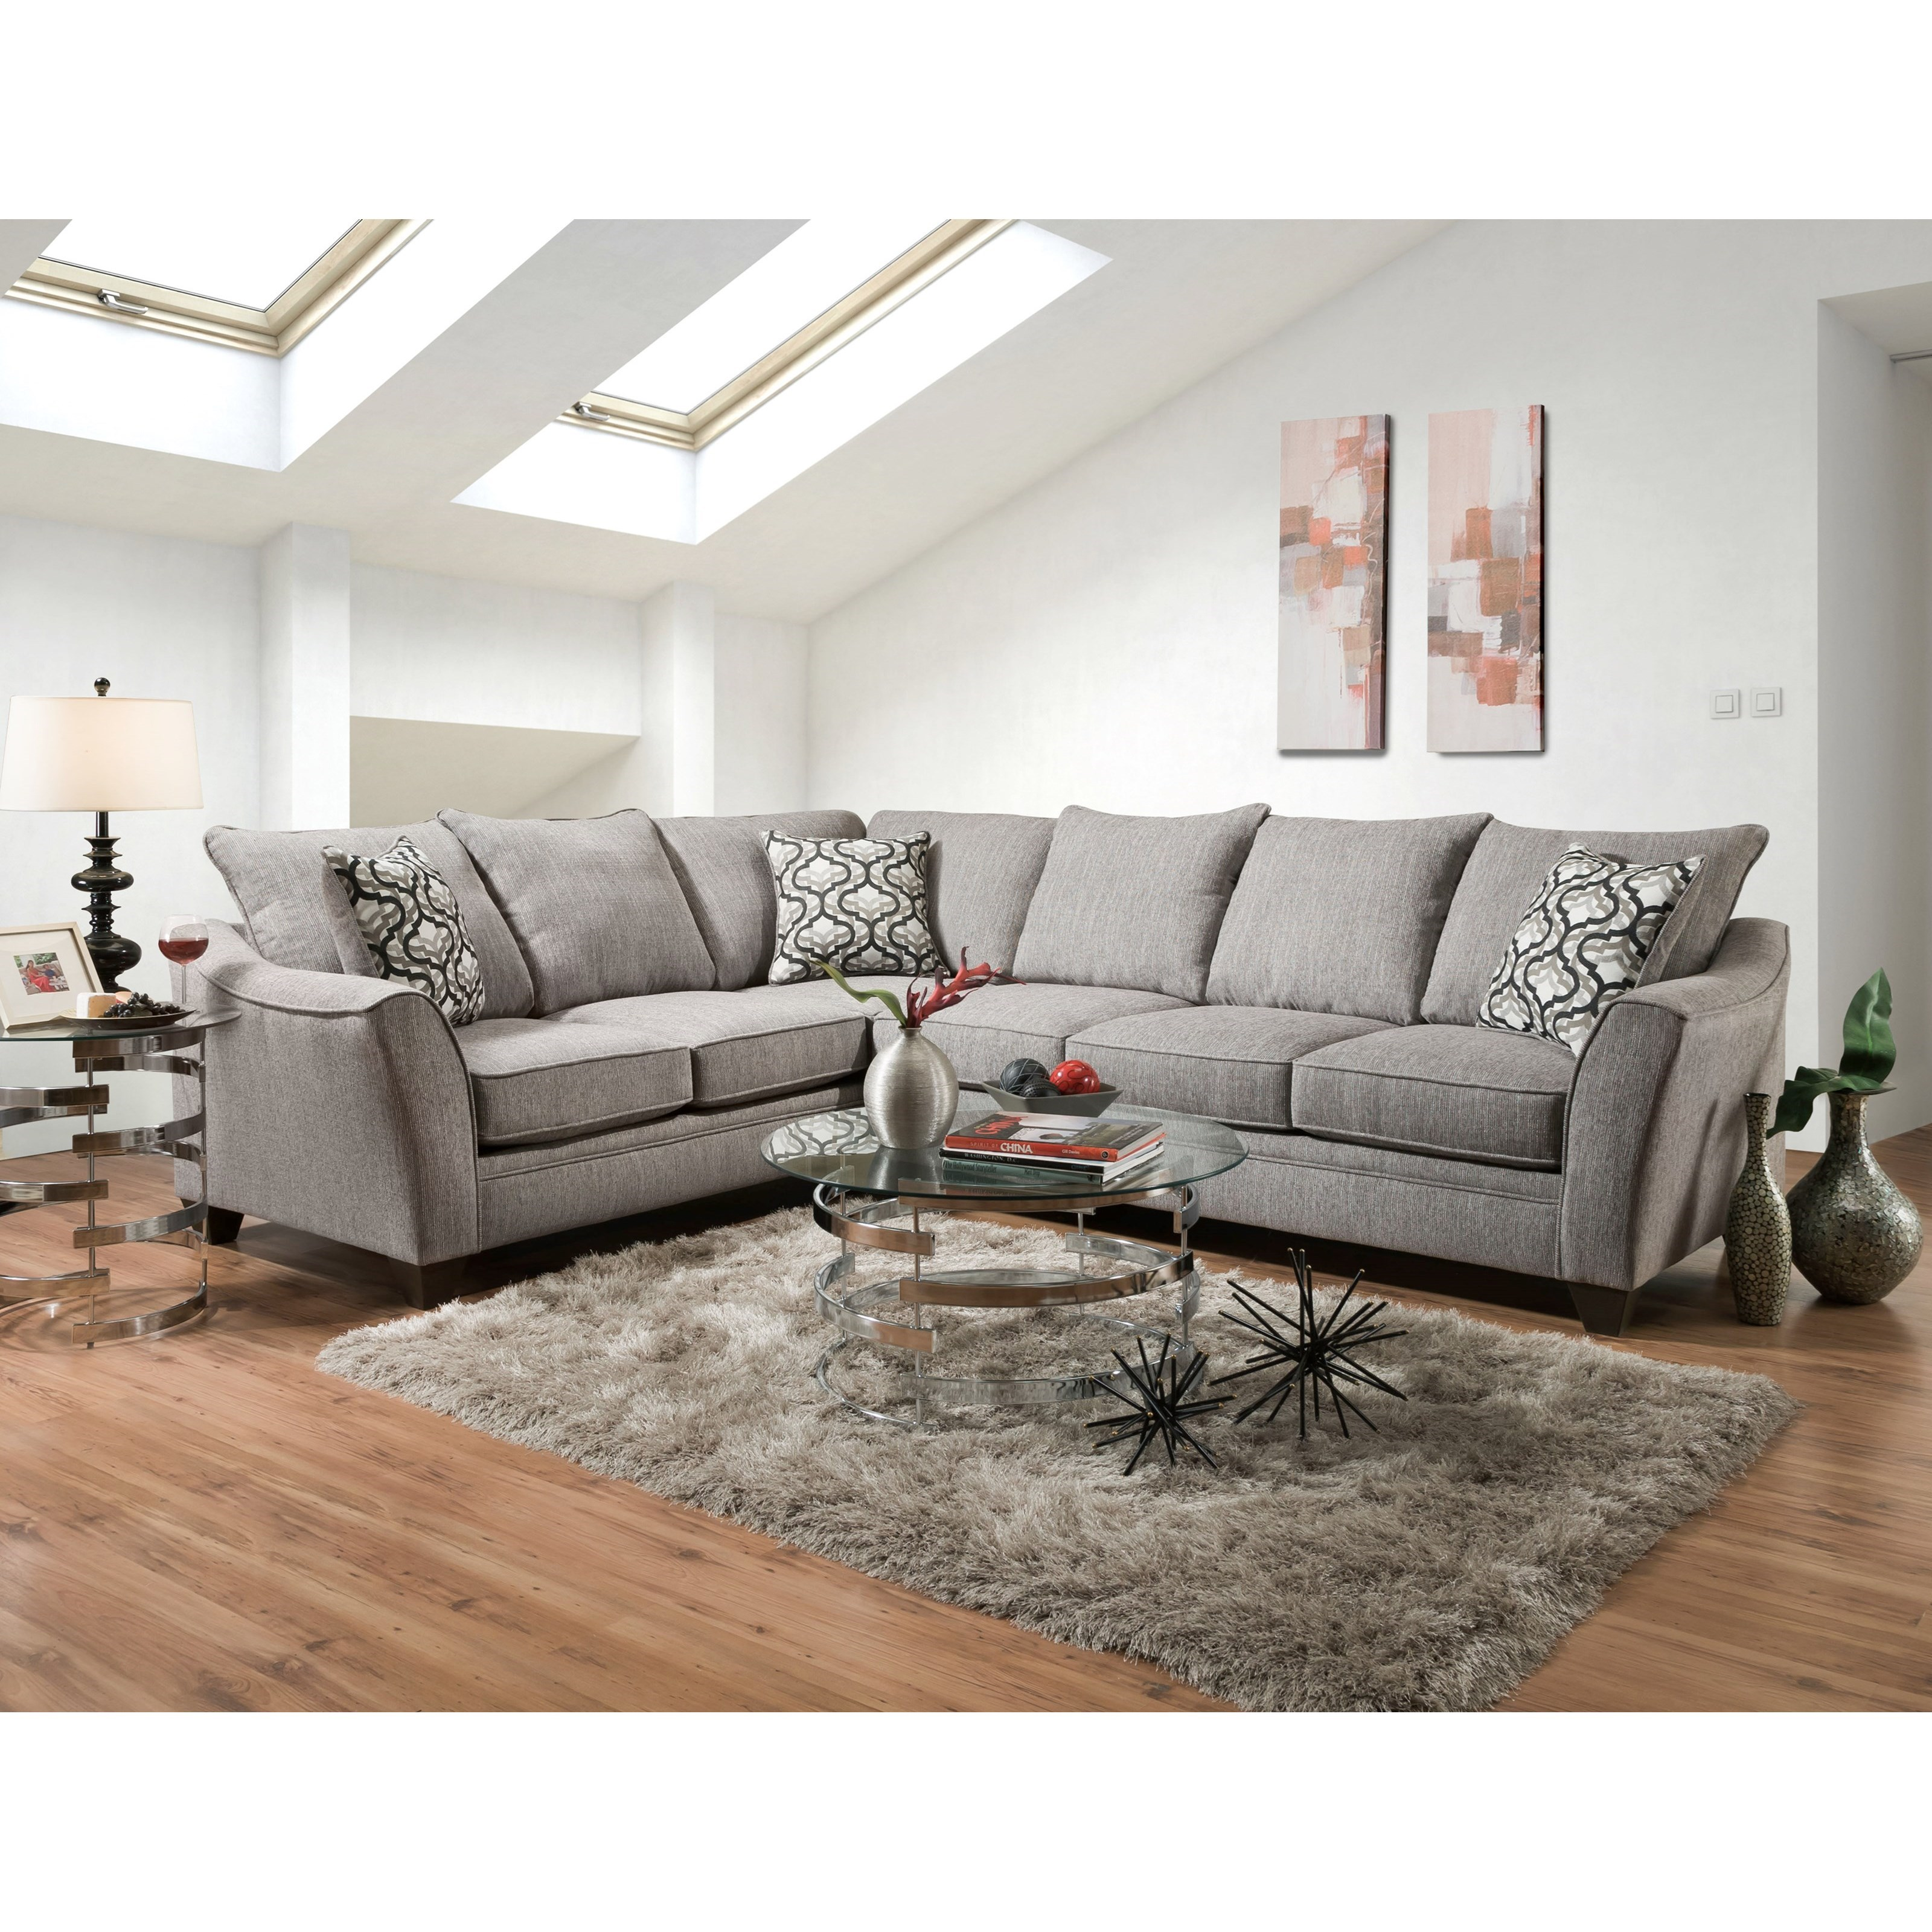 4810 5 Seat Sectional Sofa by Vendor 610 at Becker Furniture World